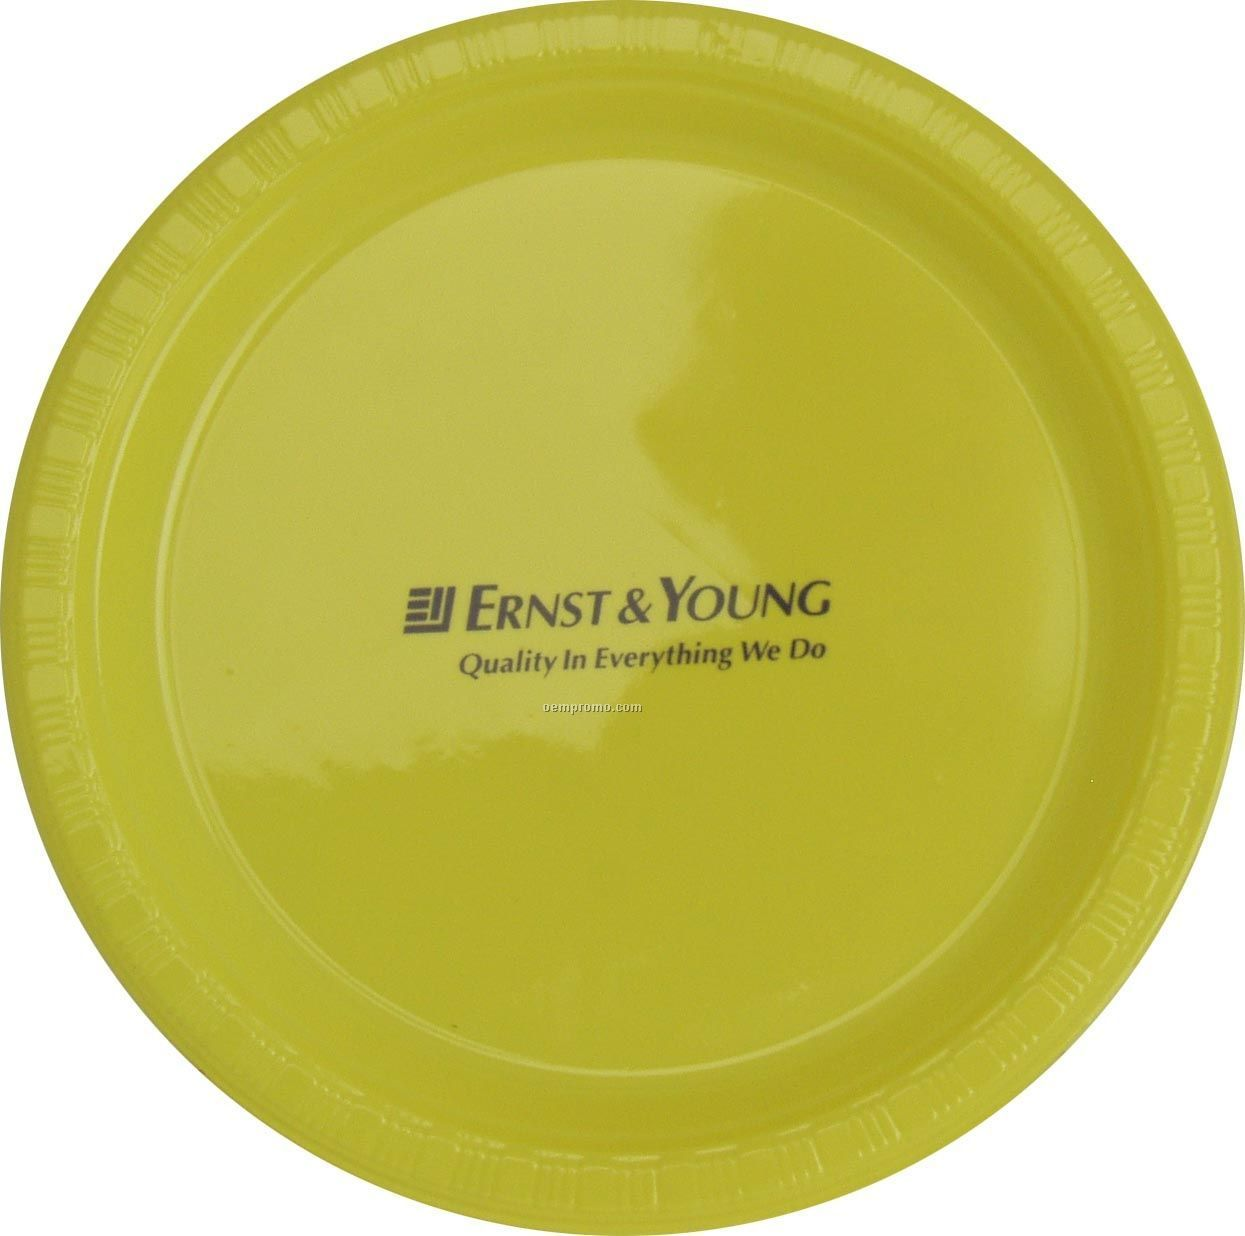 "Colorware 9"" Mimosa Yellow Plastic Plate"